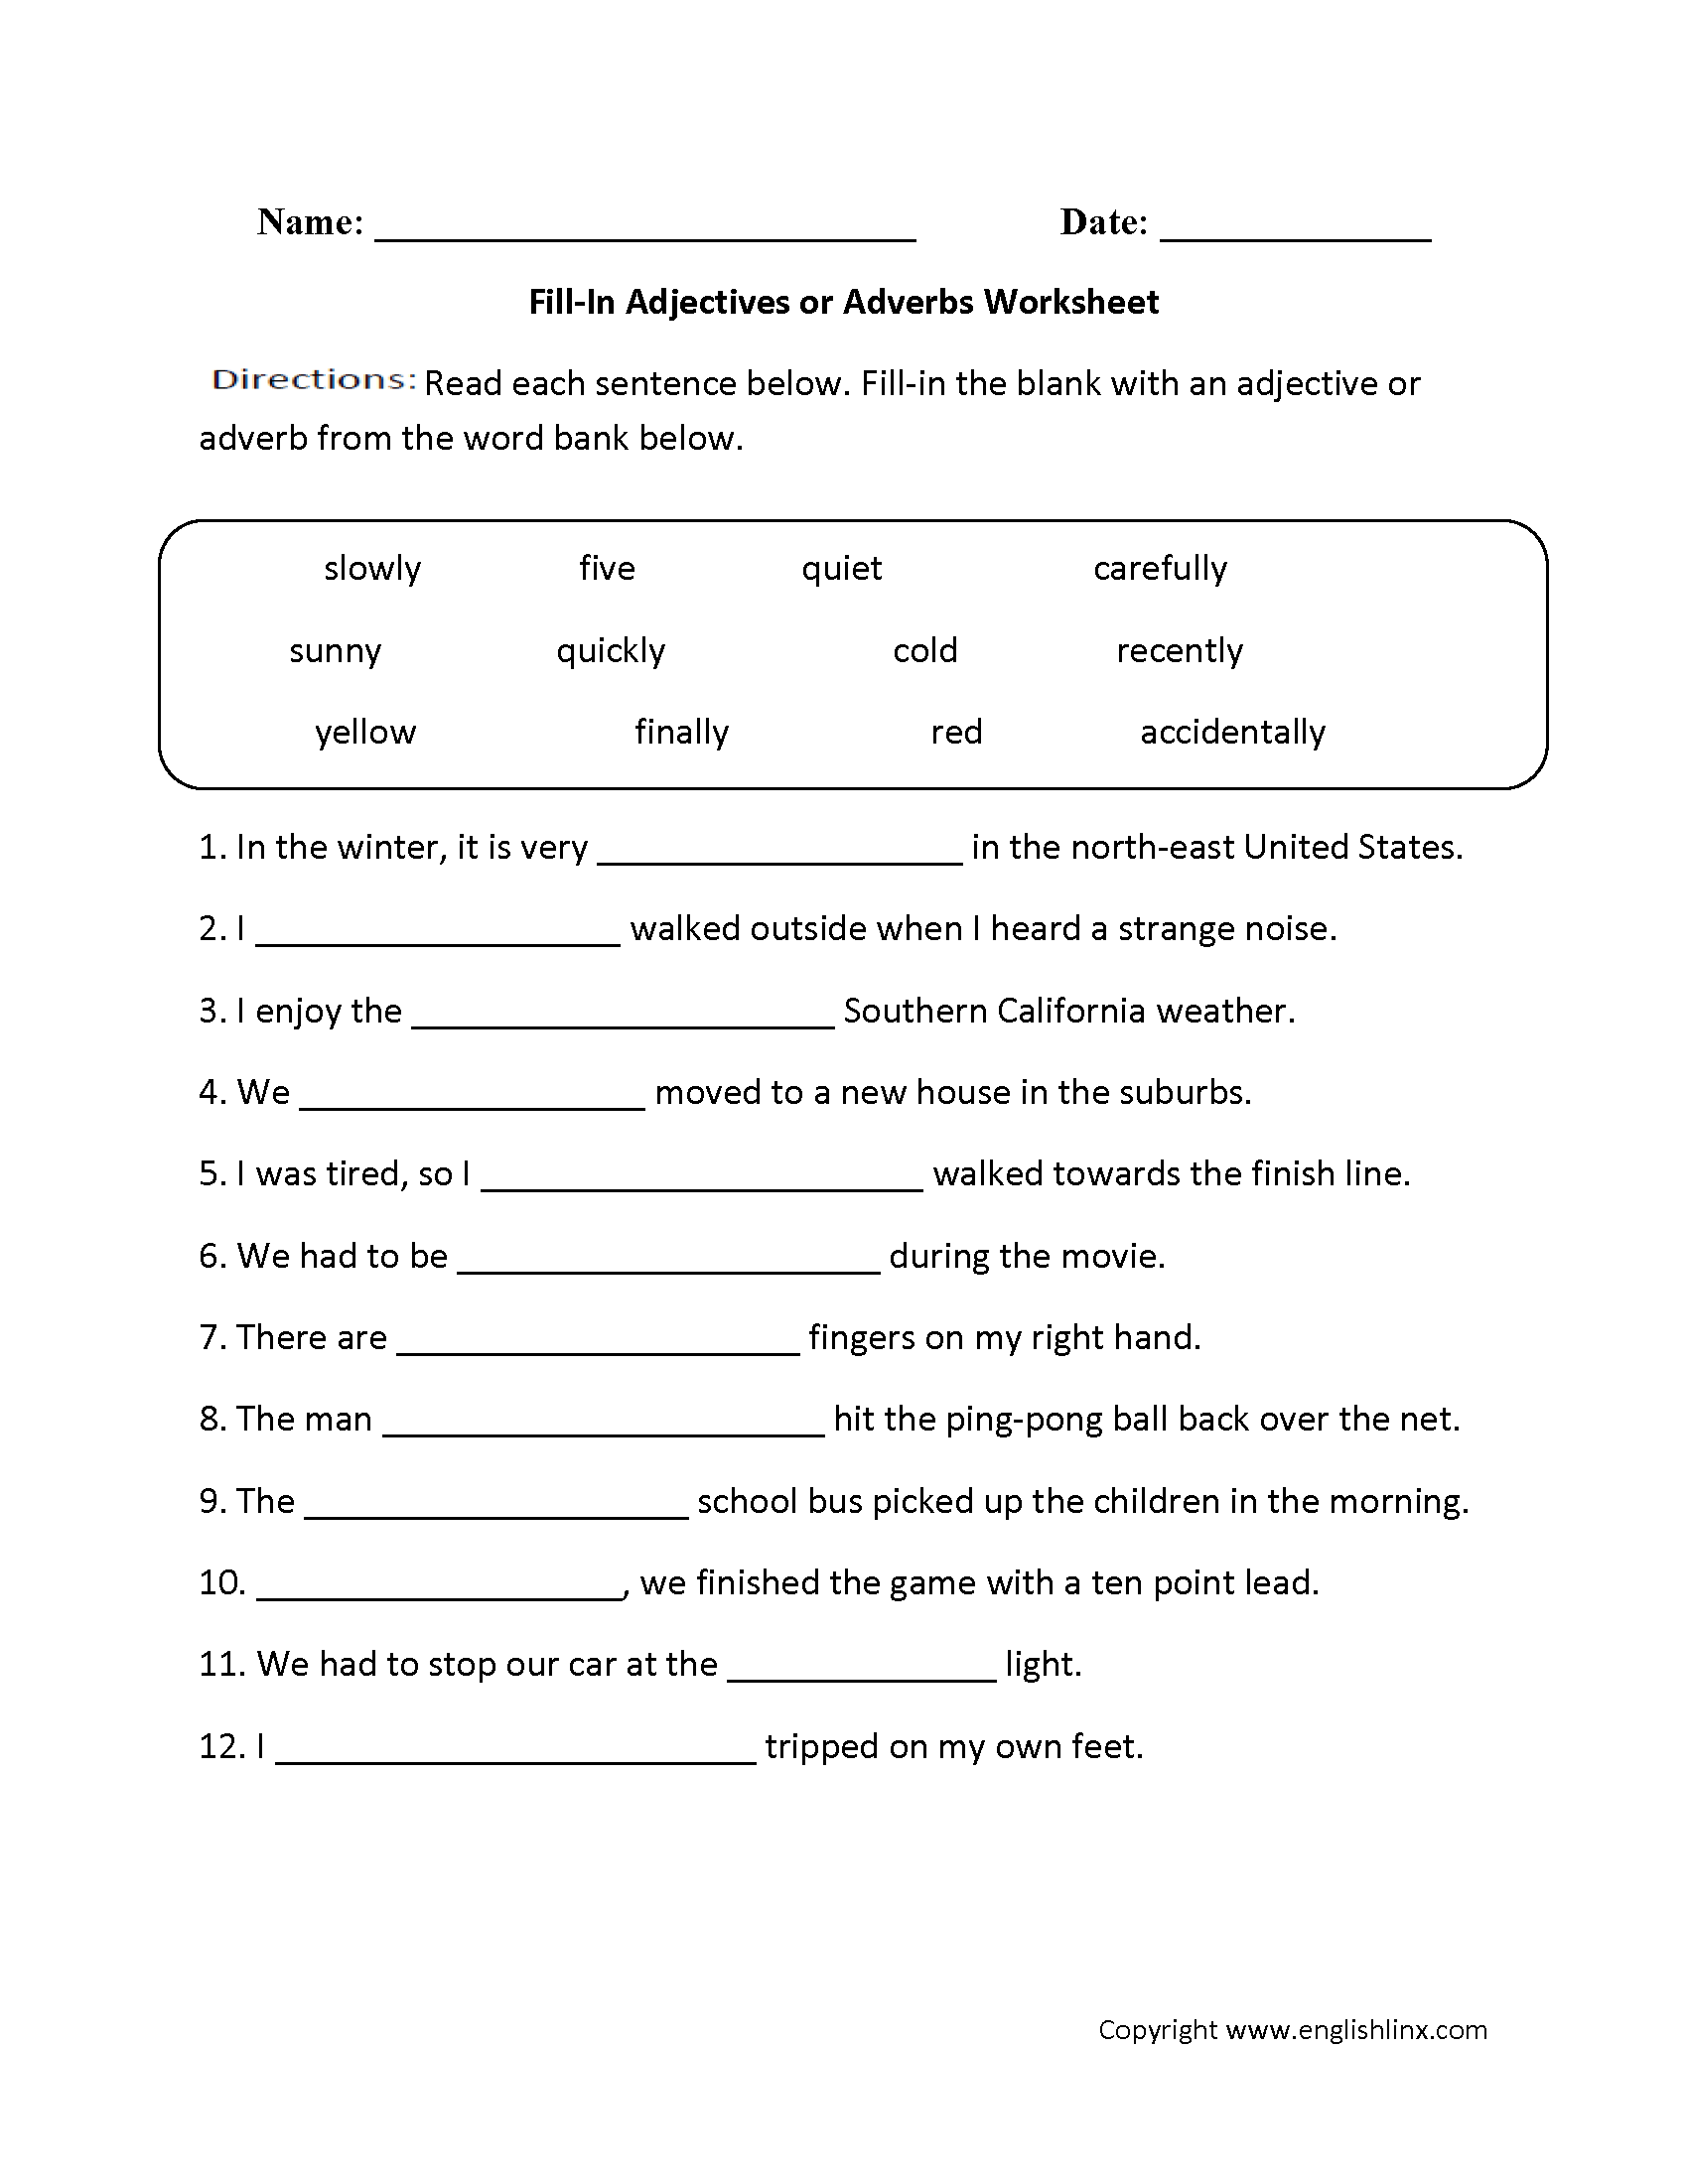 Worksheets Adverbs Worksheet adjectives or adverbs worksheets fill in worksheet